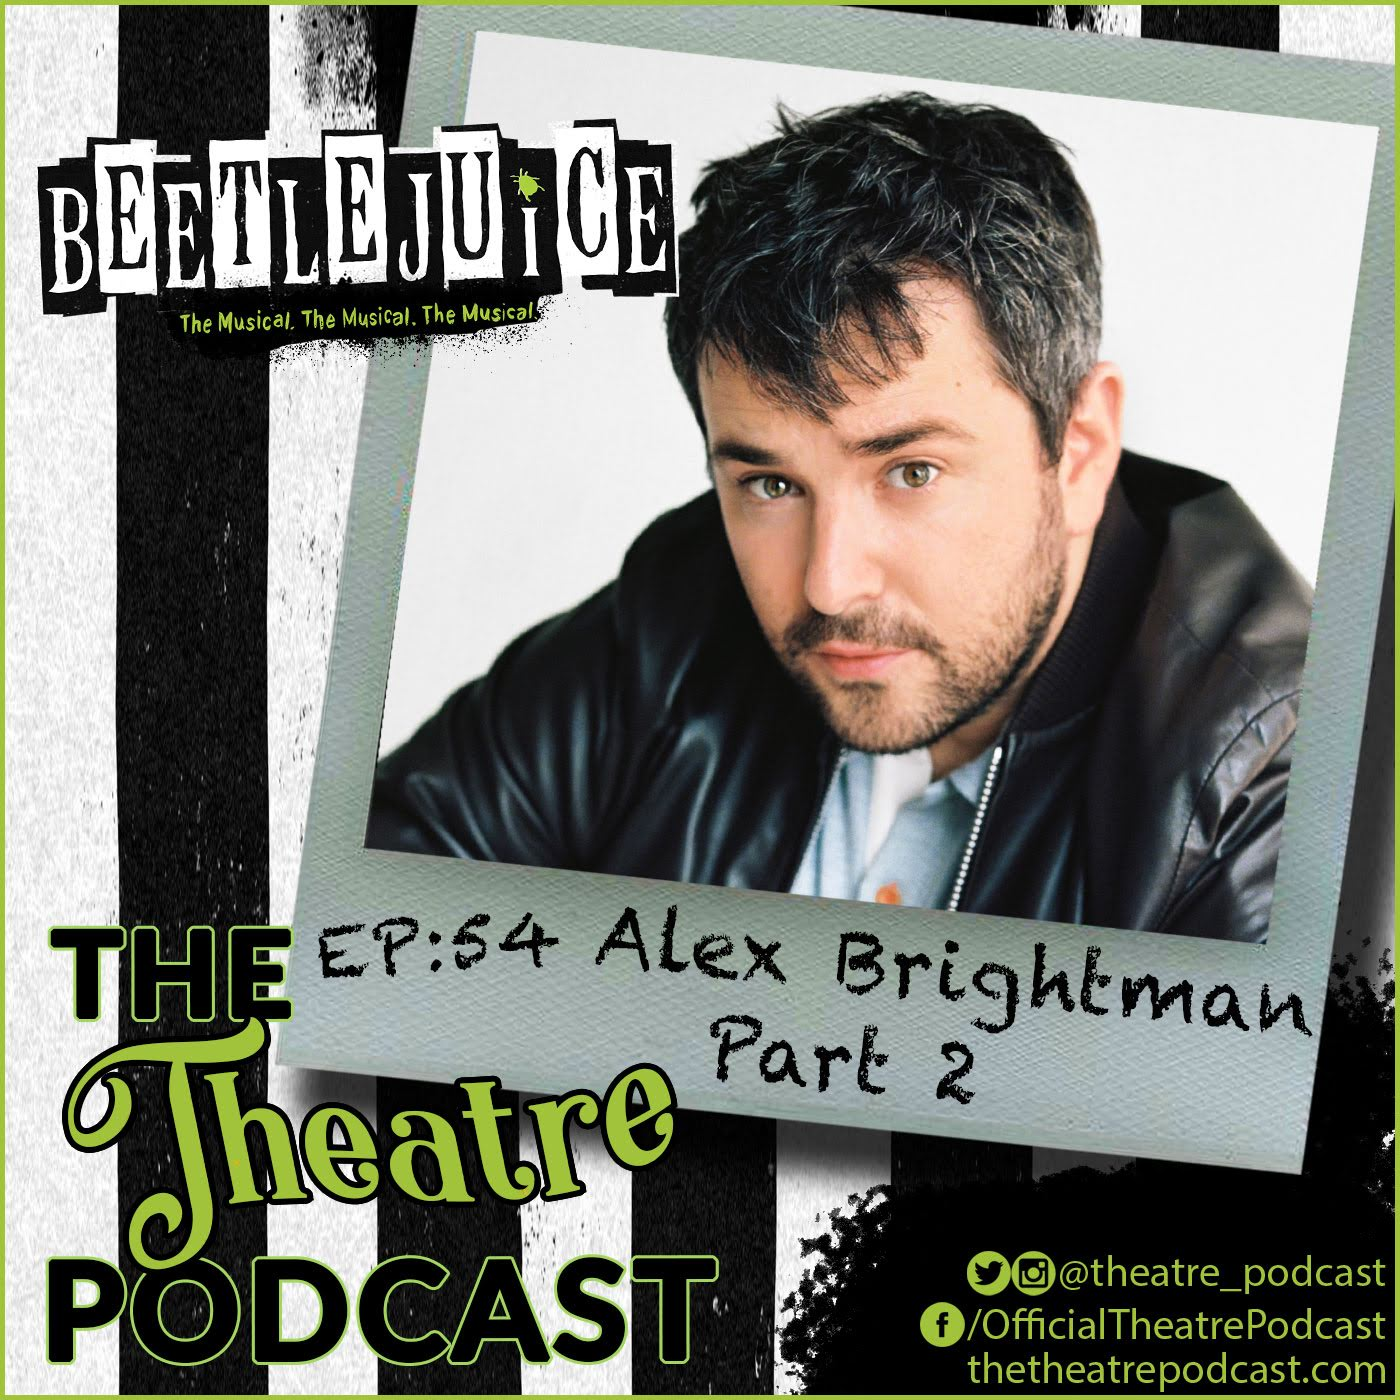 The Theatre Podcast Ep 54 Alex Brightman